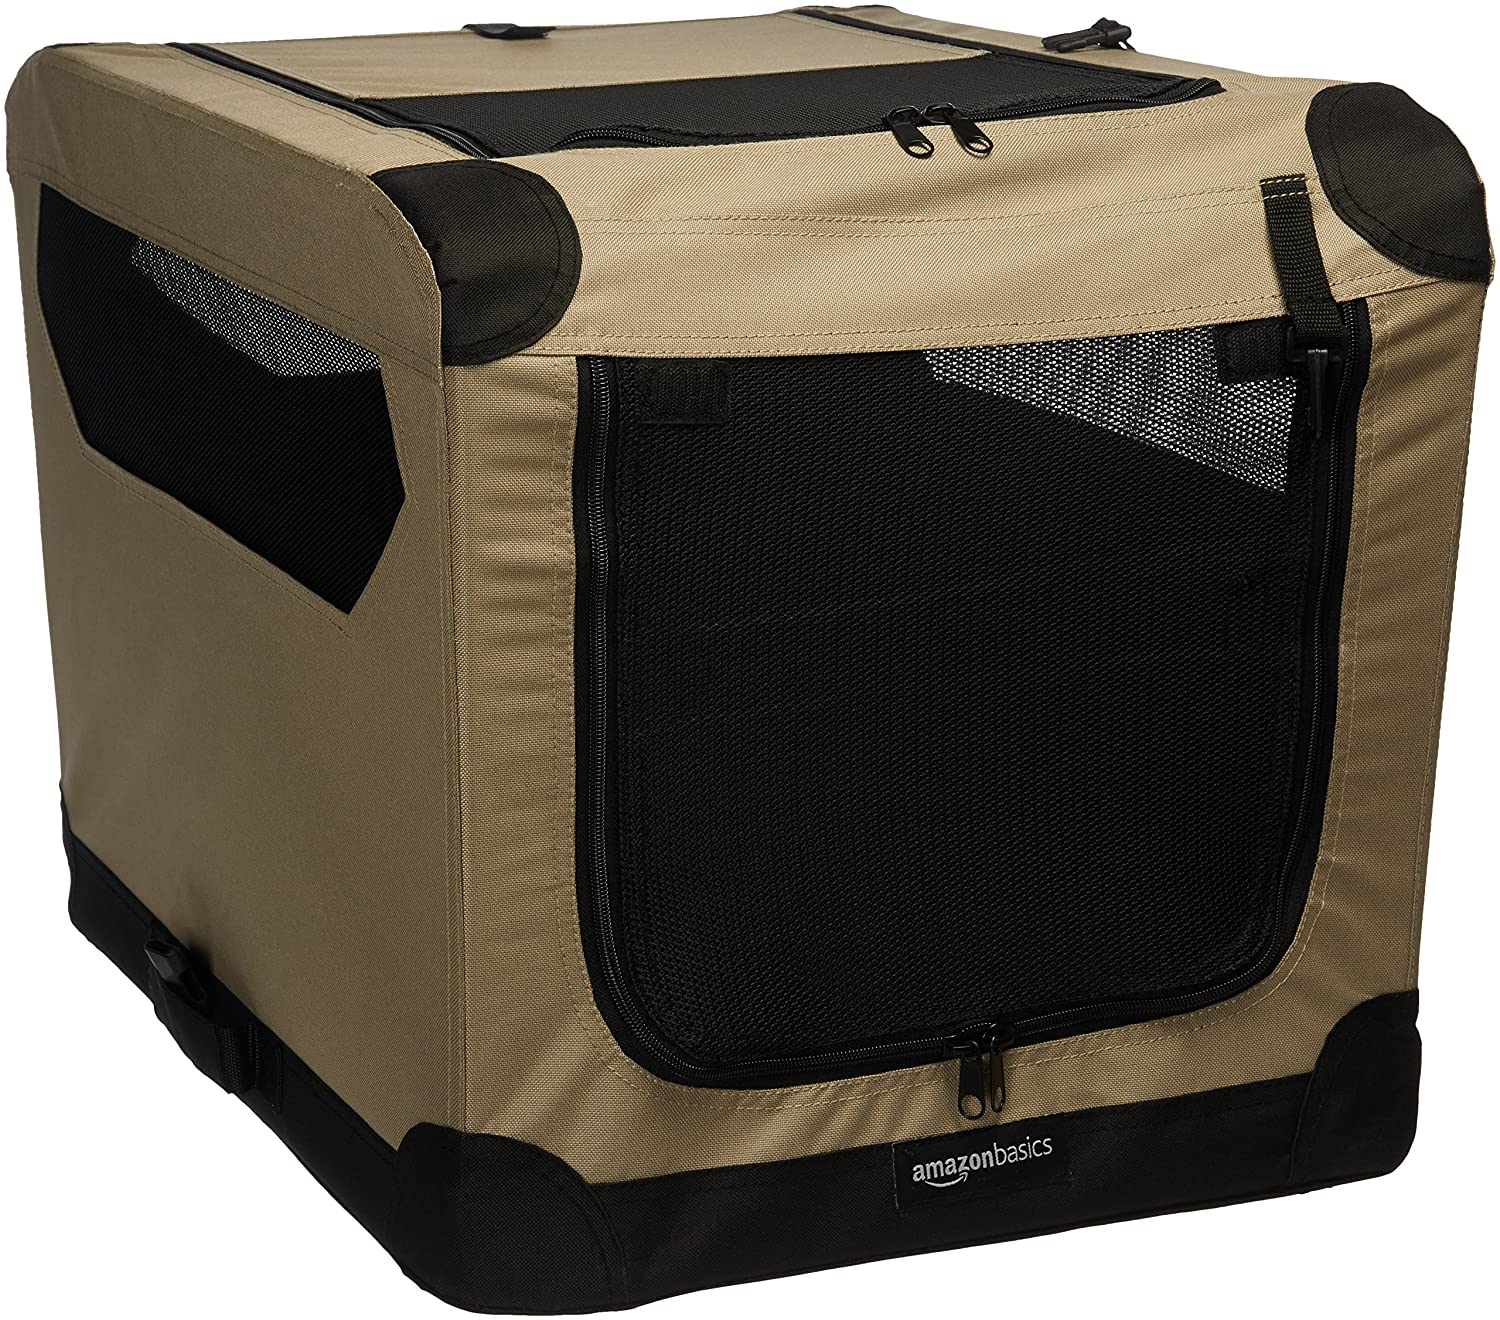 26\ AmazonBasics Folding Soft Dog Crate, 26